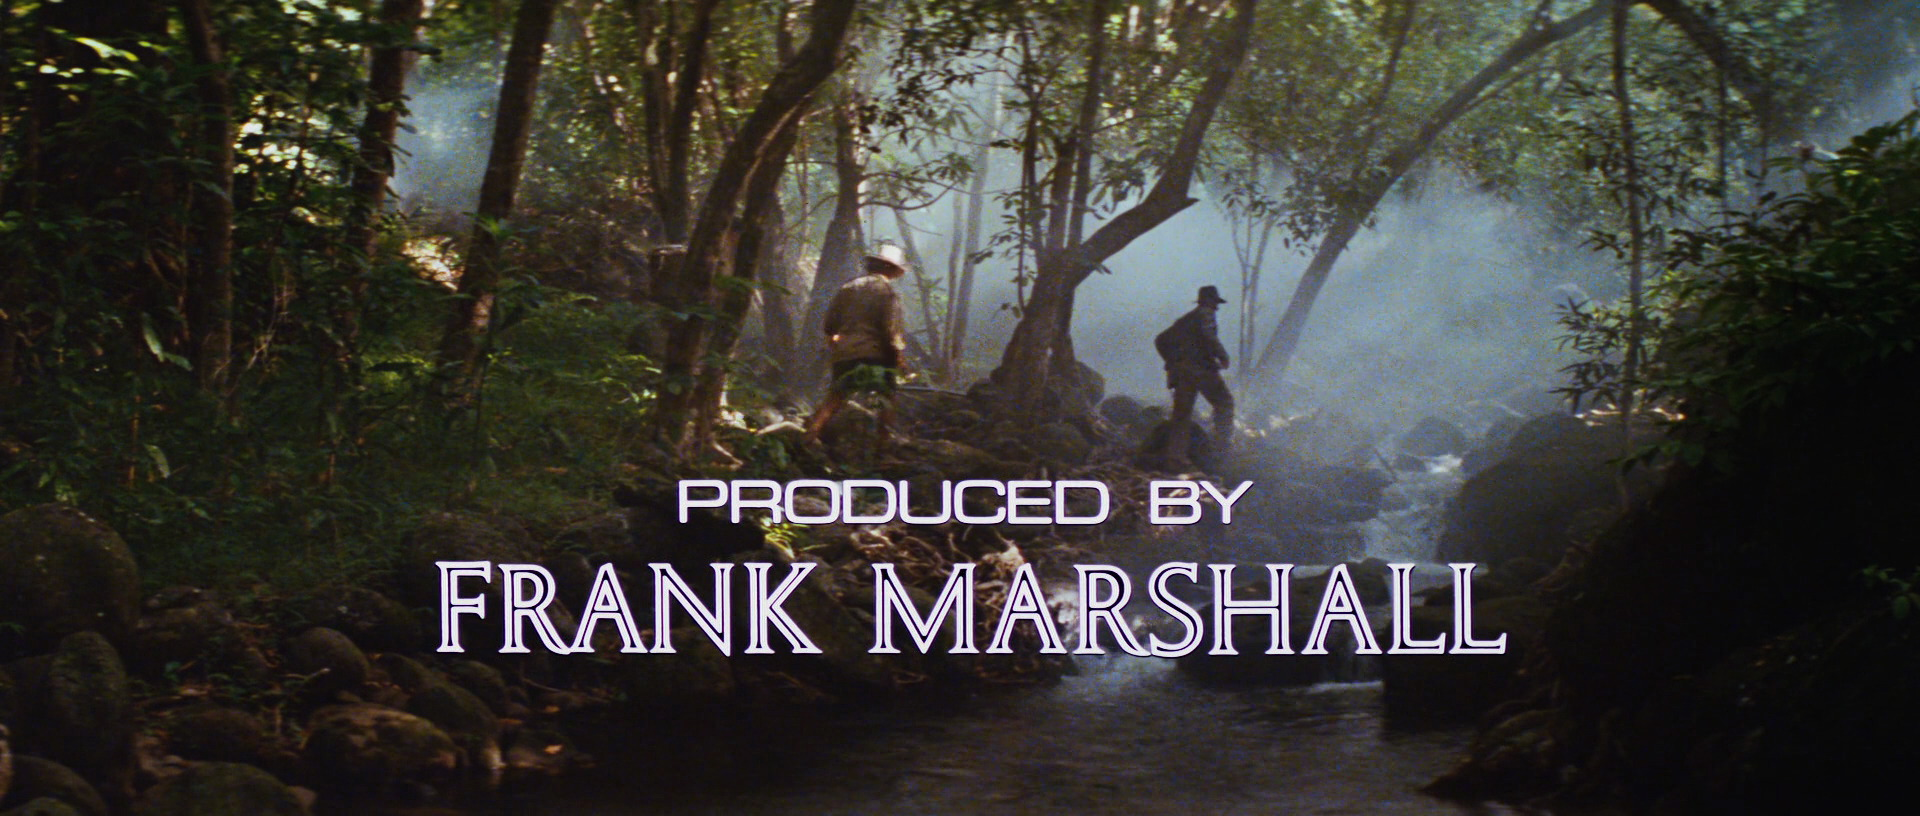 raiders-lost-ark-movie-screencaps.com-197.jpg